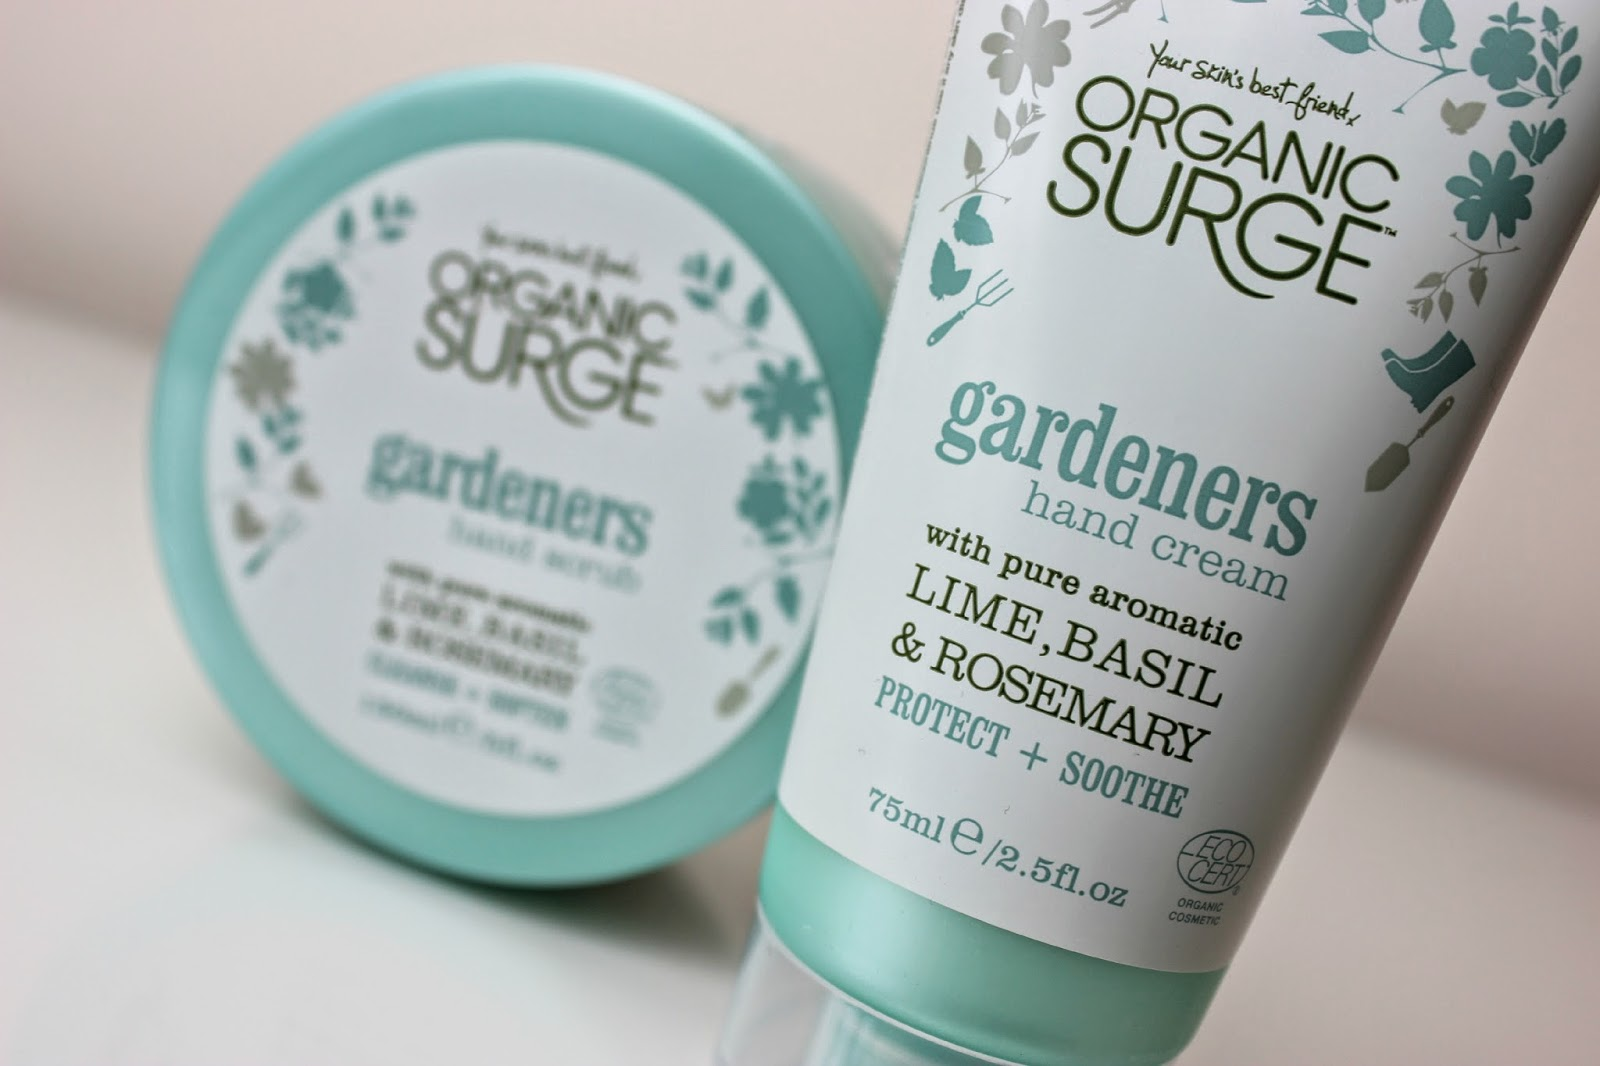 A picture of Organic Surge Gardeners Hand Scrub and Hand Cream